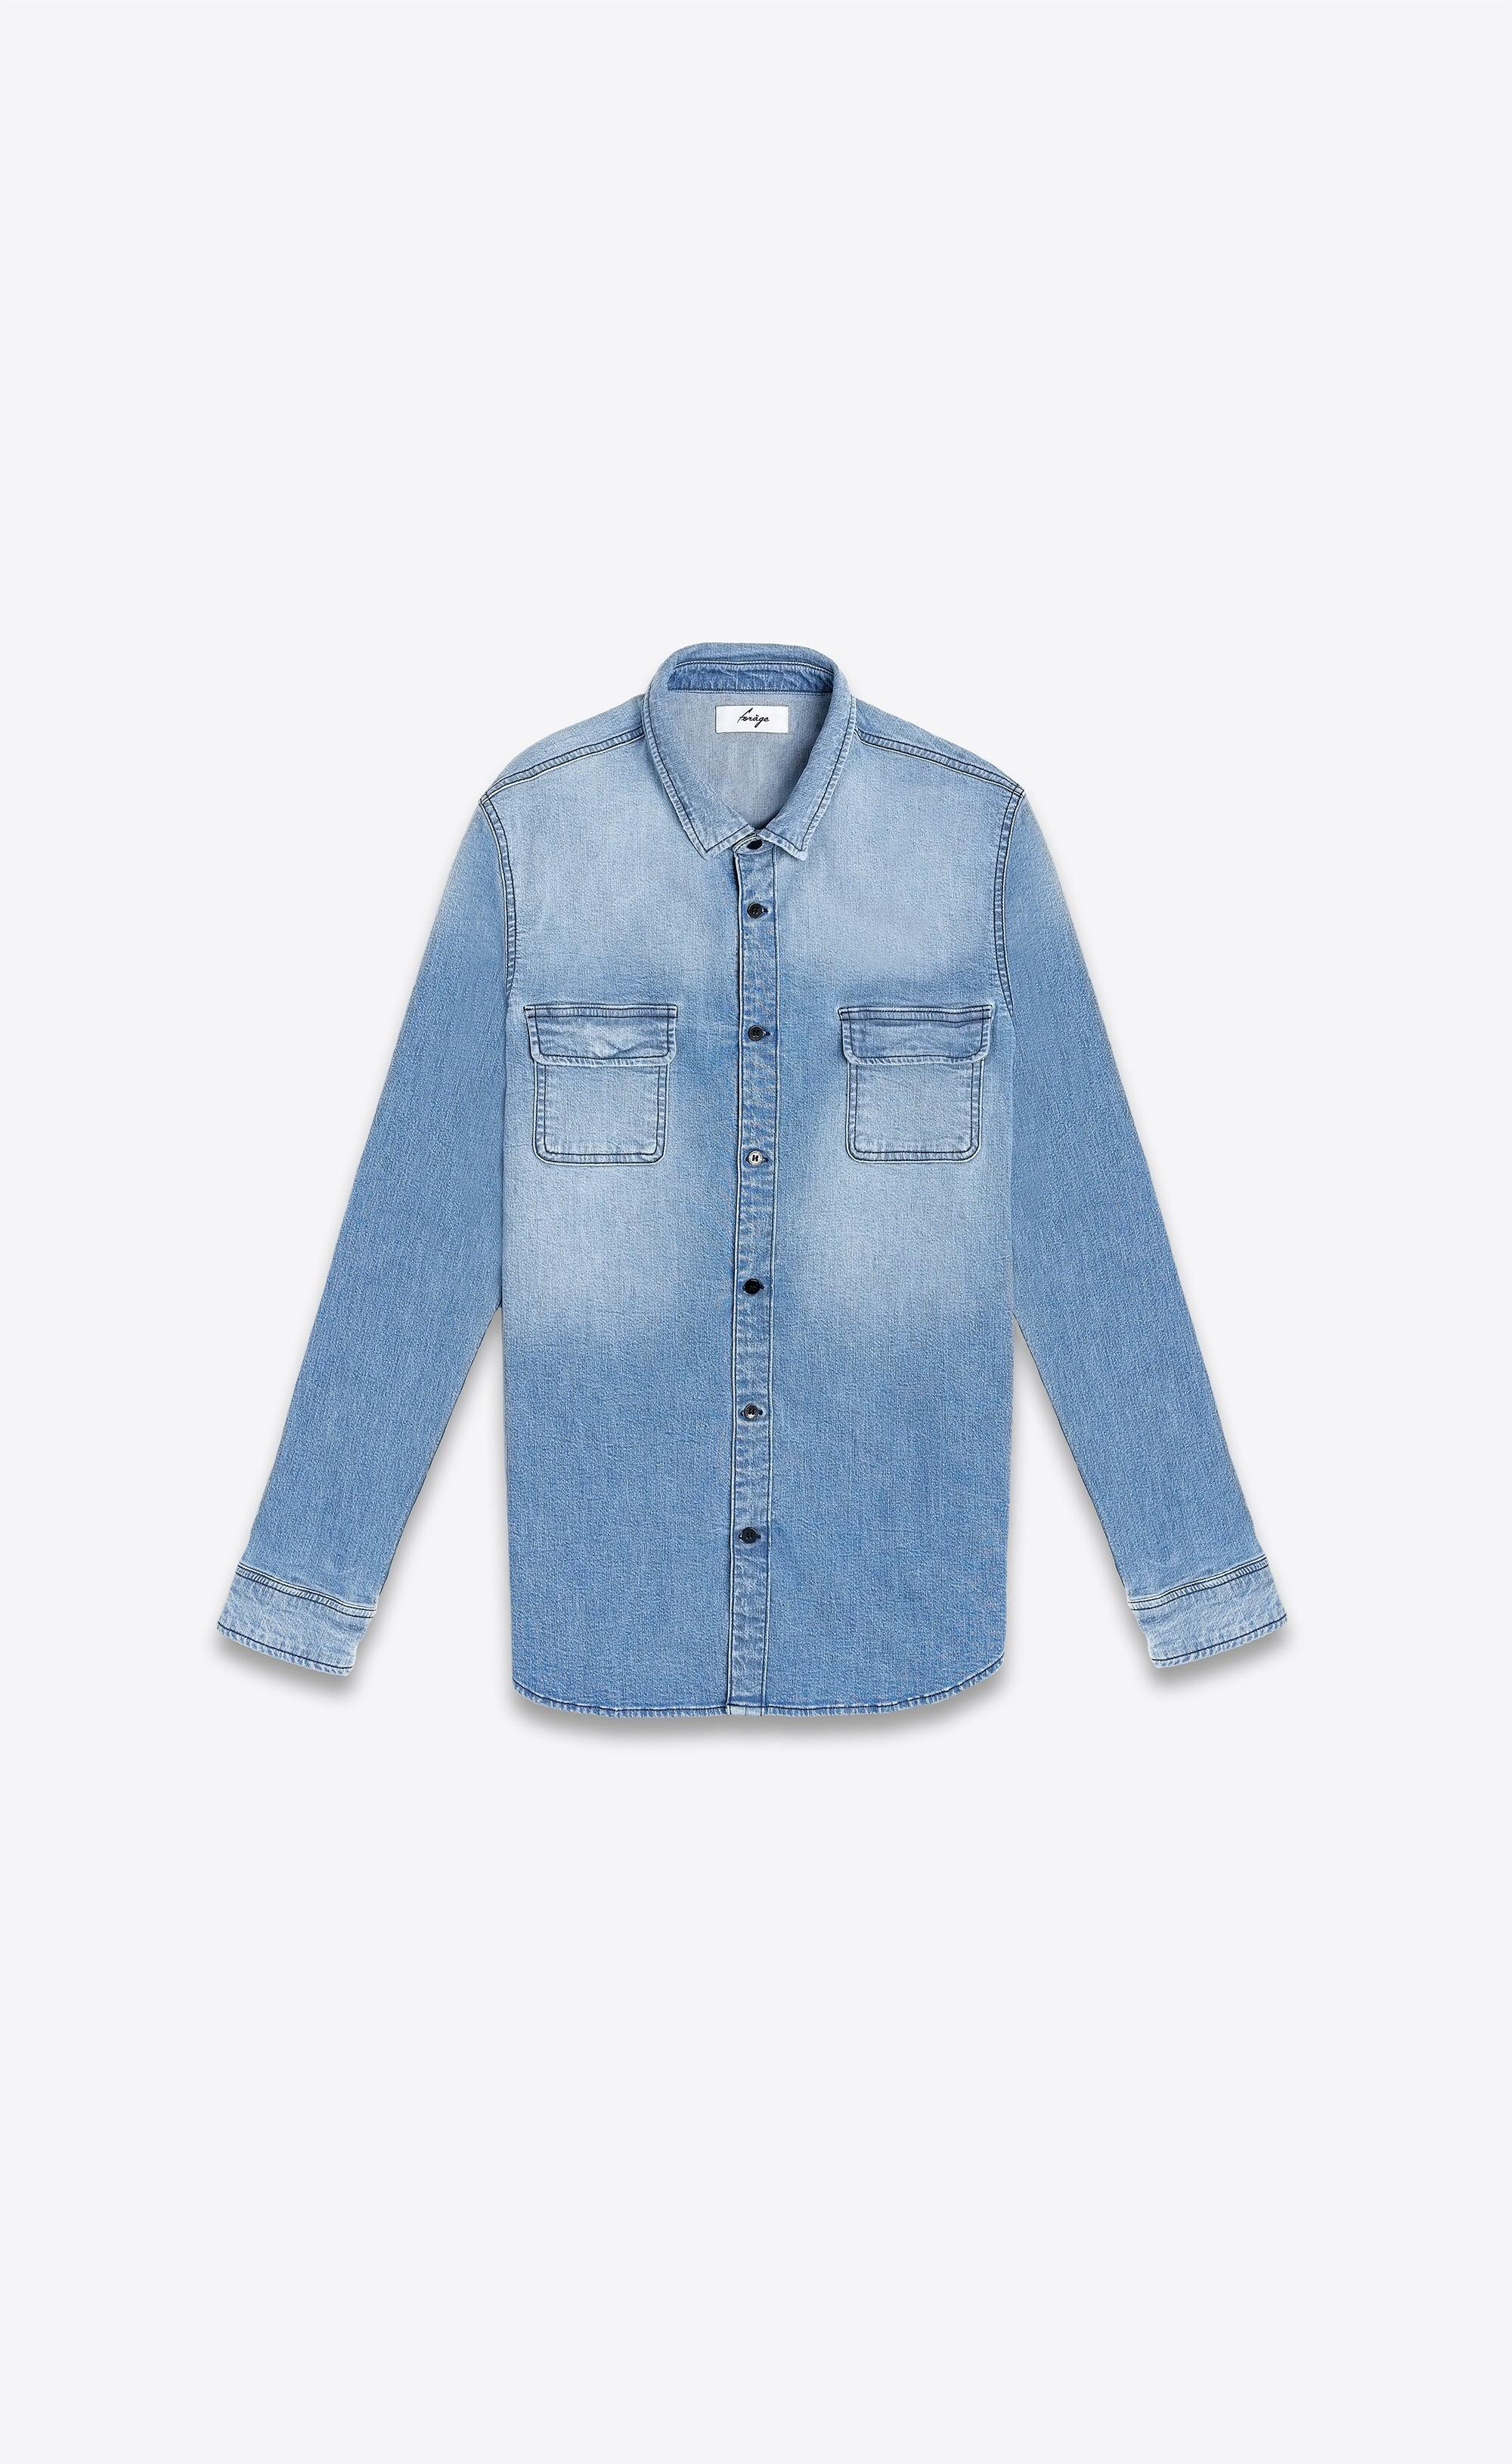 CLASSIC DENIM SHIRT - BLUE - Forage-Clothing